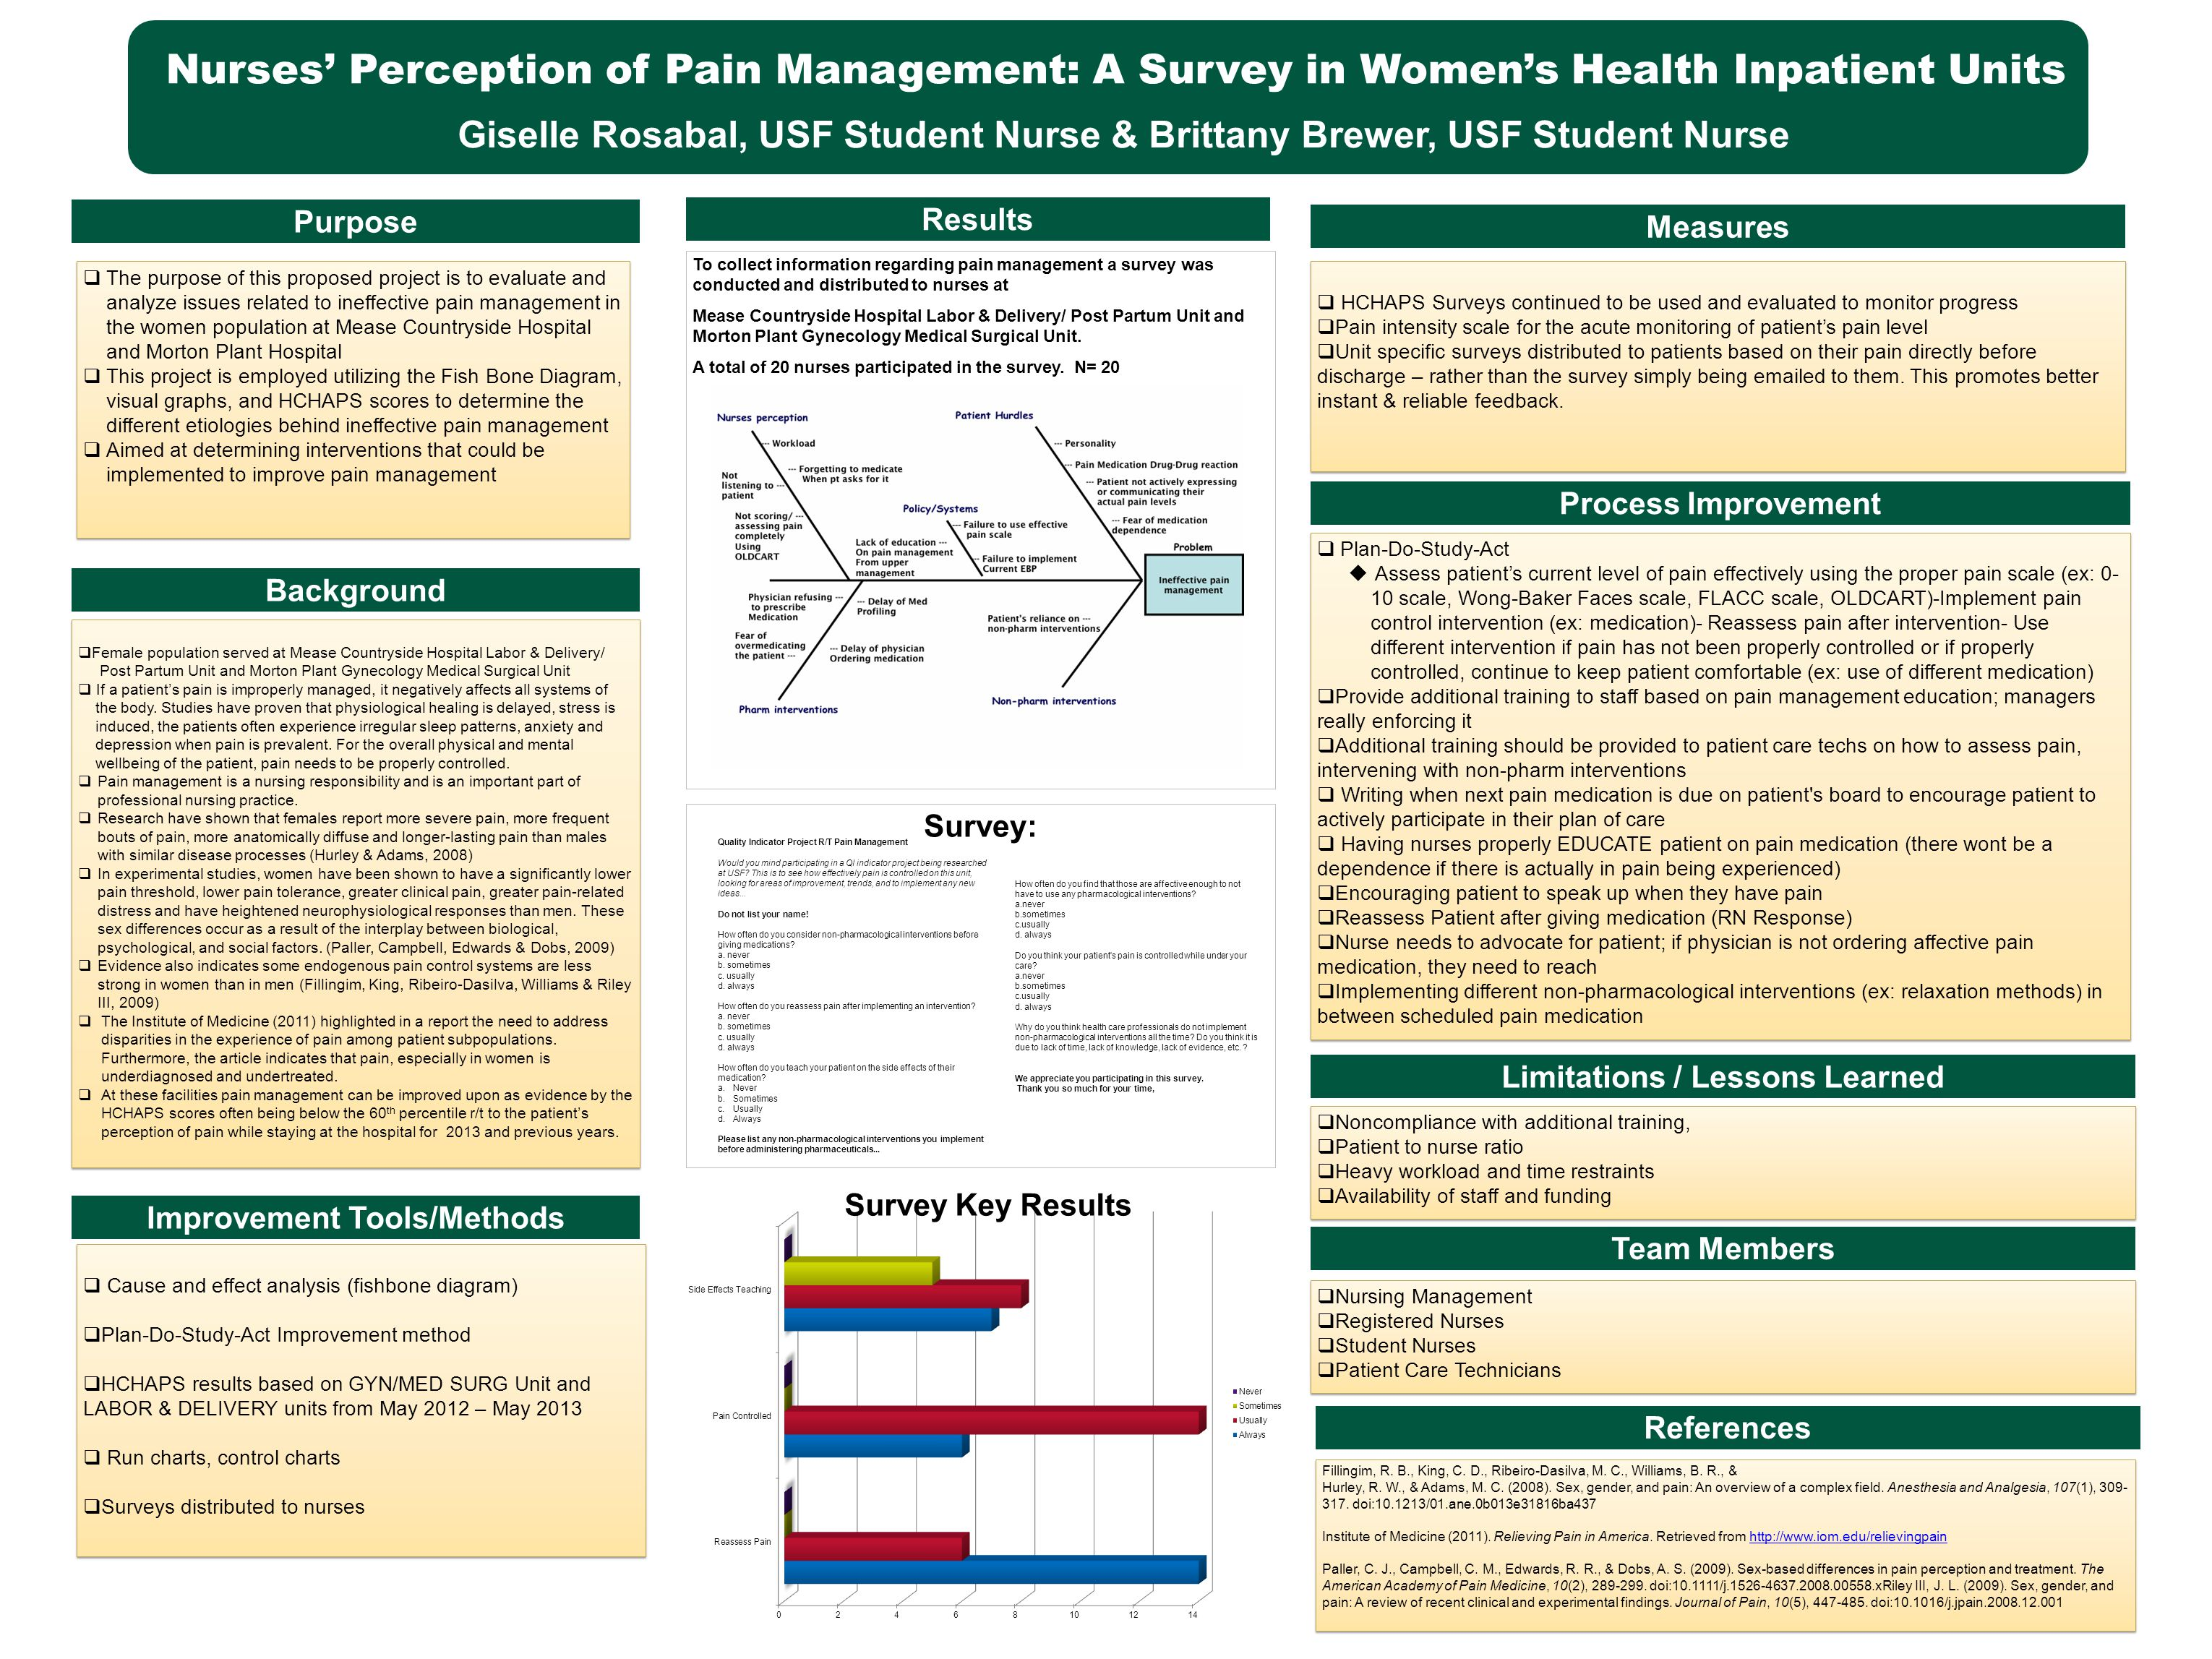 Purpose Improvement Tools/Methods Limitations / Lessons Learned Results Process Improvement Nurses' Perception of Pain Management: A Survey in Women's Health Inpatient Units Giselle Rosabal, USF Student Nurse & Brittany Brewer, USF Student Nurse  The purpose of this proposed project is to evaluate and analyze issues related to ineffective pain management in the women population at Mease Countryside Hospital and Morton Plant Hospital  This project is employed utilizing the Fish Bone Diagram, visual graphs, and HCHAPS scores to determine the different etiologies behind ineffective pain management  Aimed at determining interventions that could be implemented to improve pain management  The purpose of this proposed project is to evaluate and analyze issues related to ineffective pain management in the women population at Mease Countryside Hospital and Morton Plant Hospital  This project is employed utilizing the Fish Bone Diagram, visual graphs, and HCHAPS scores to determine the different etiologies behind ineffective pain management  Aimed at determining interventions that could be implemented to improve pain management  Female population served at Mease Countryside Hospital Labor & Delivery/ Post Partum Unit and Morton Plant Gynecology Medical Surgical Unit  If a patient's pain is improperly managed, it negatively affects all systems of the body.